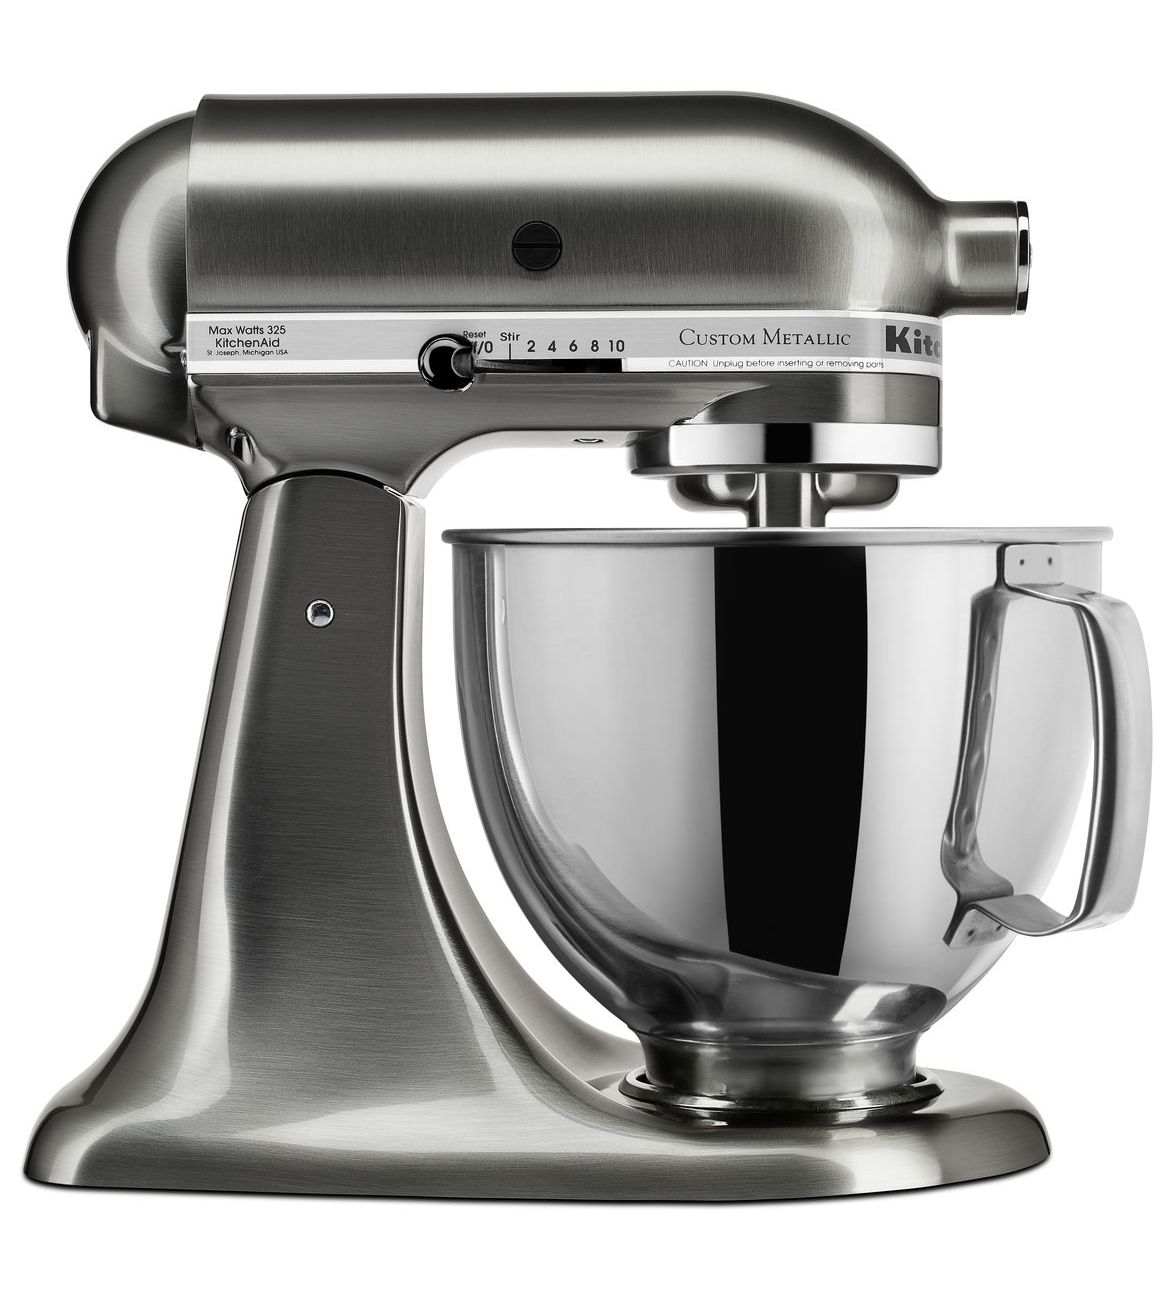 KitchenAid-Custom-Metallic-Series-5-Quart-Tilt-Head-Stand-Mixer-KSM152PS thumbnail 2